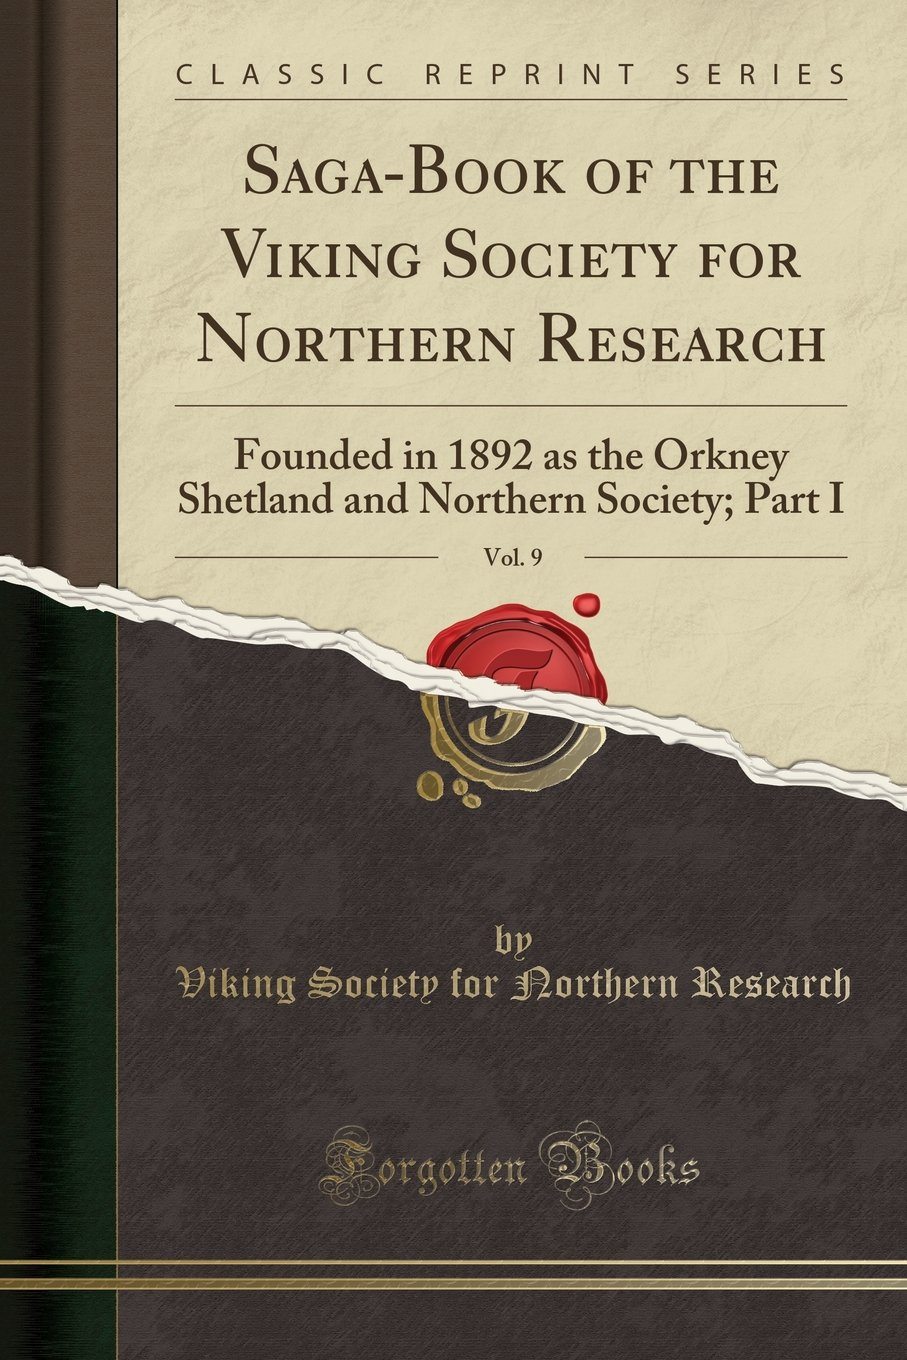 Saga-Book of the Viking Society for Northern Research, Vol. 9: Founded in 1892 as the Orkney Shetland and Northern Society; Part I (Classic Reprint) PDF